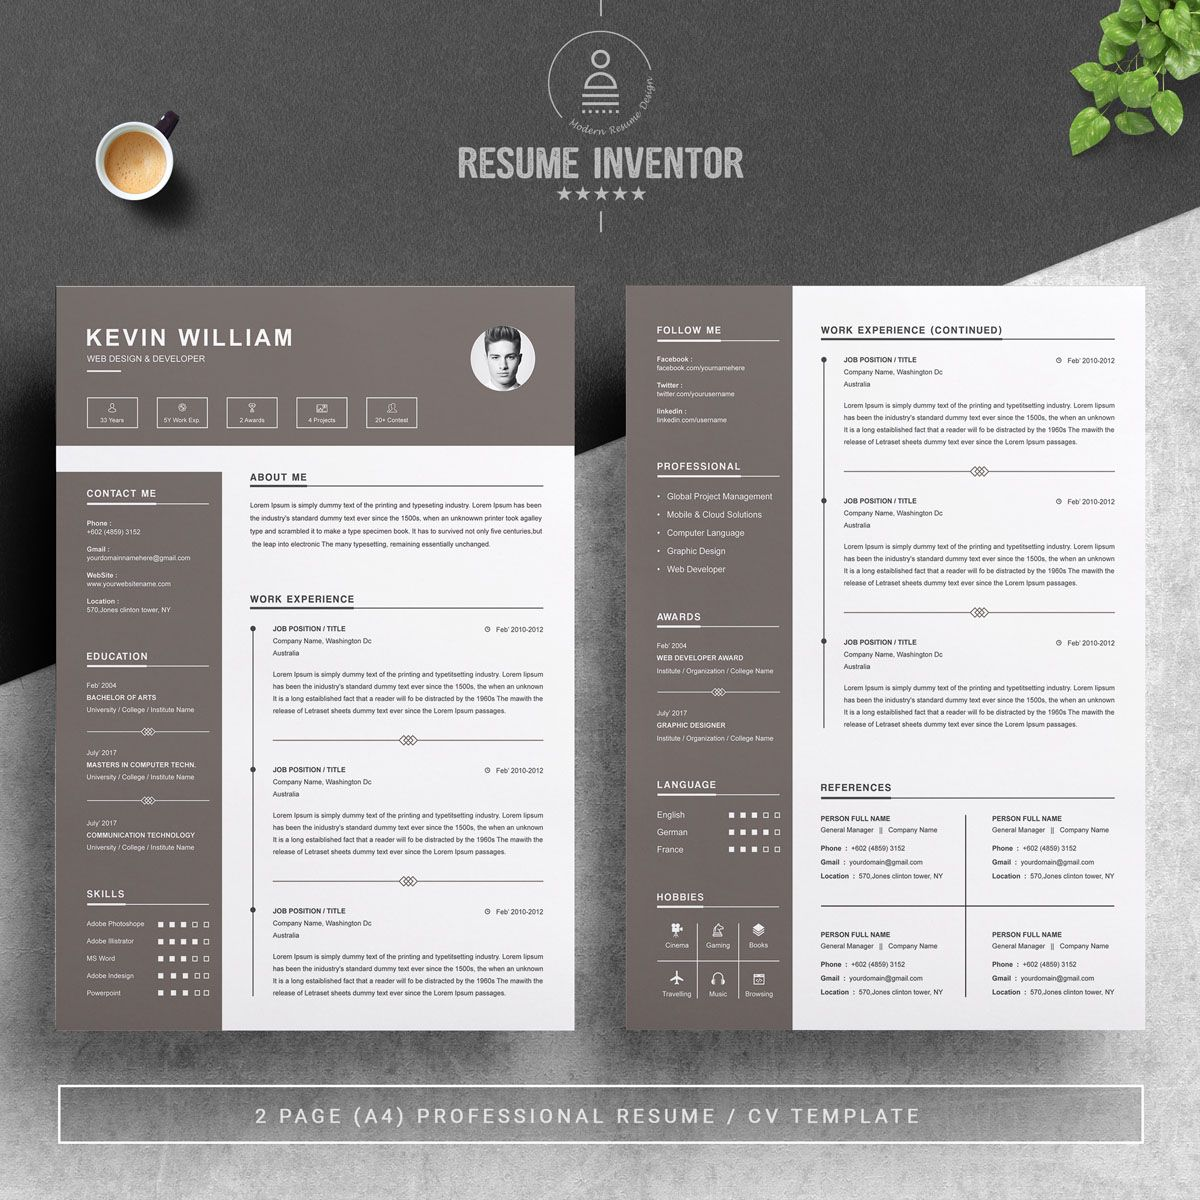 Kevin William Resume Template, Affiliate William Kevin